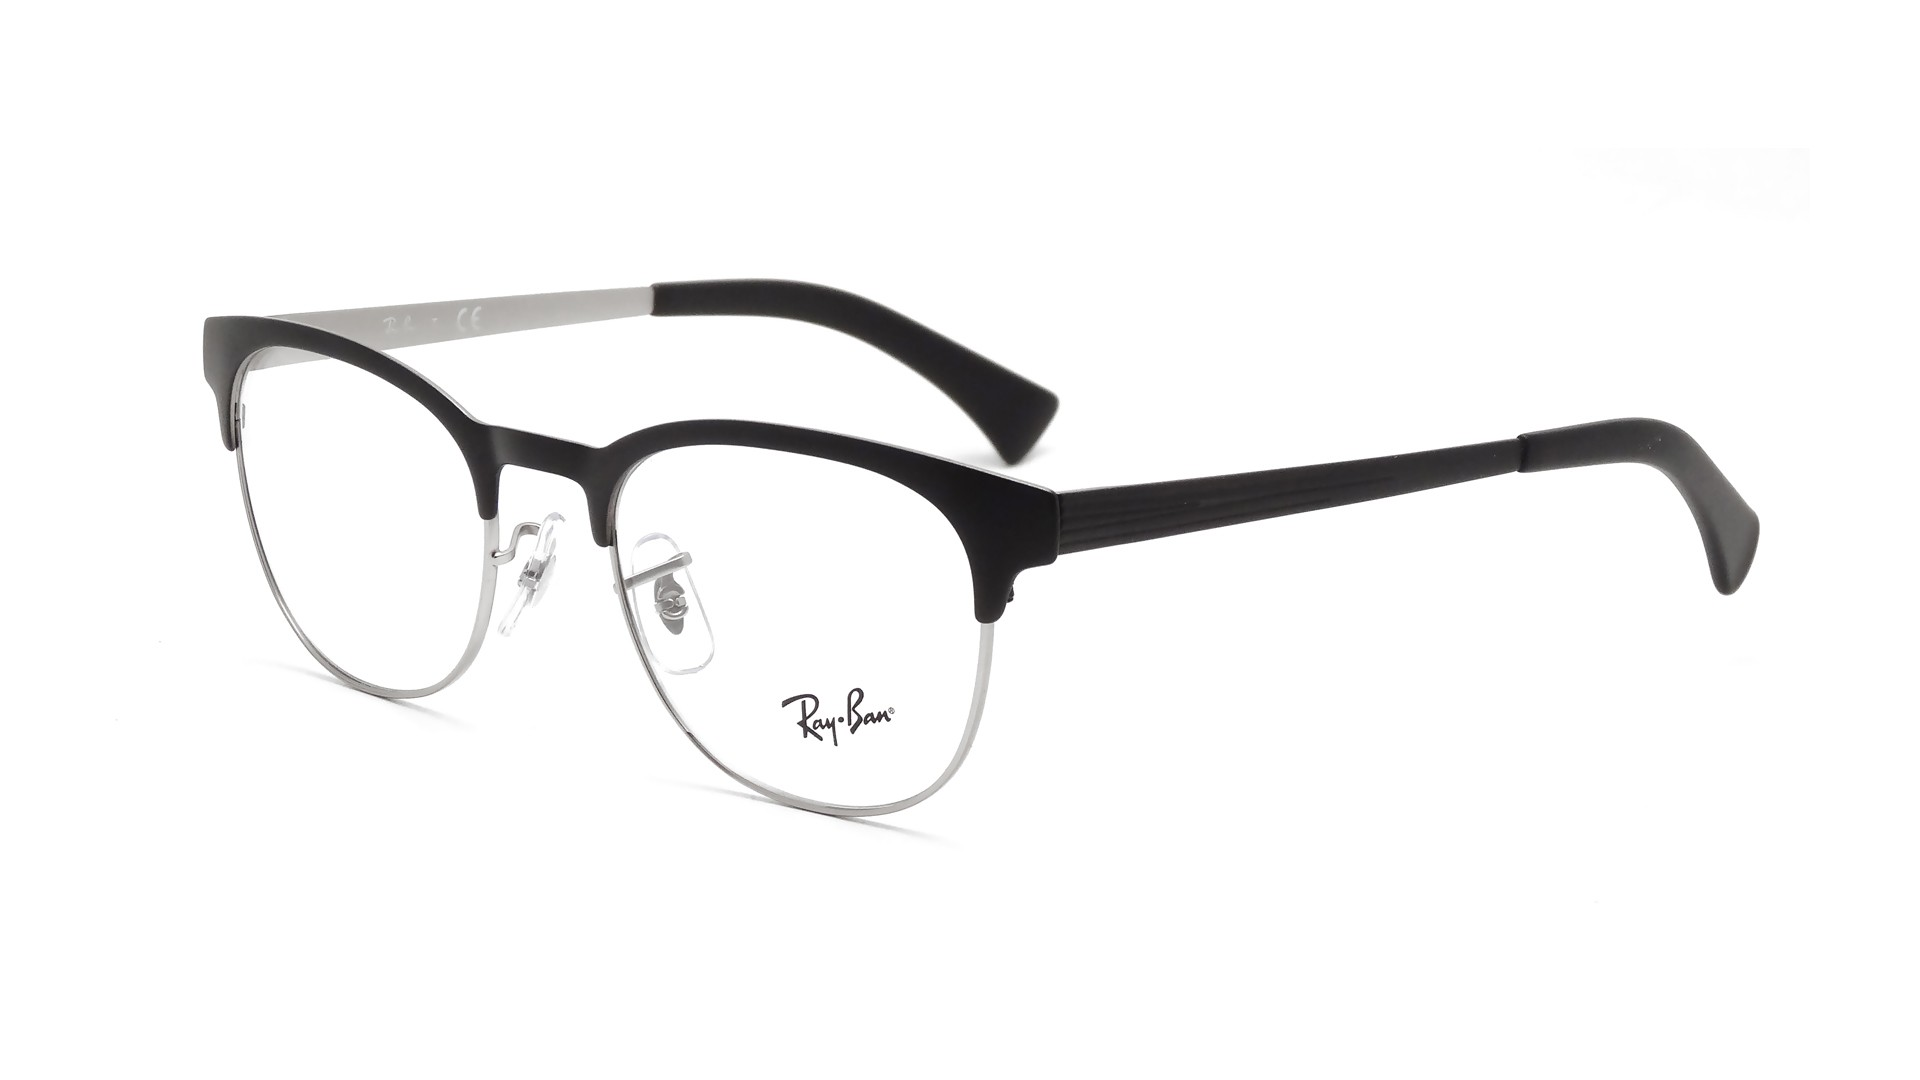 efd828756acaf Lunettes de vue Ray-Ban Clubmaster Black RX6317 RB6317 2832 51-20 ...